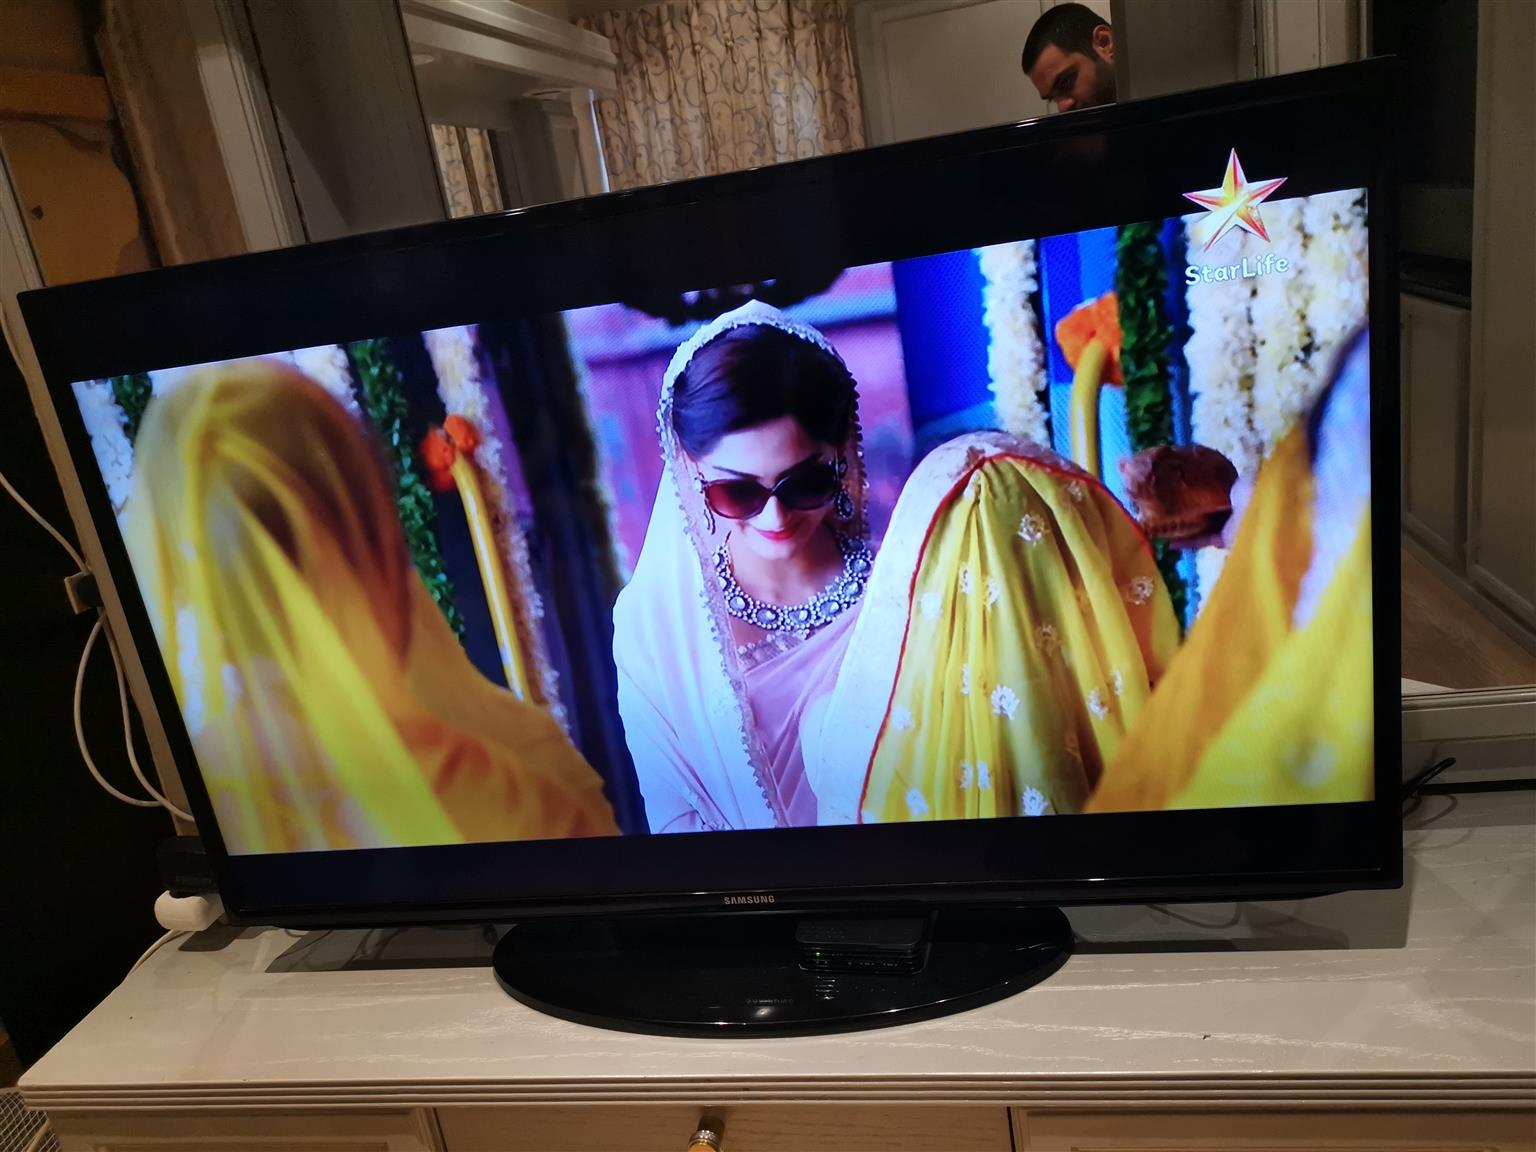 Ongekend Samsung 46 inch smart Fhd led tv in perfect condition includes FW-58